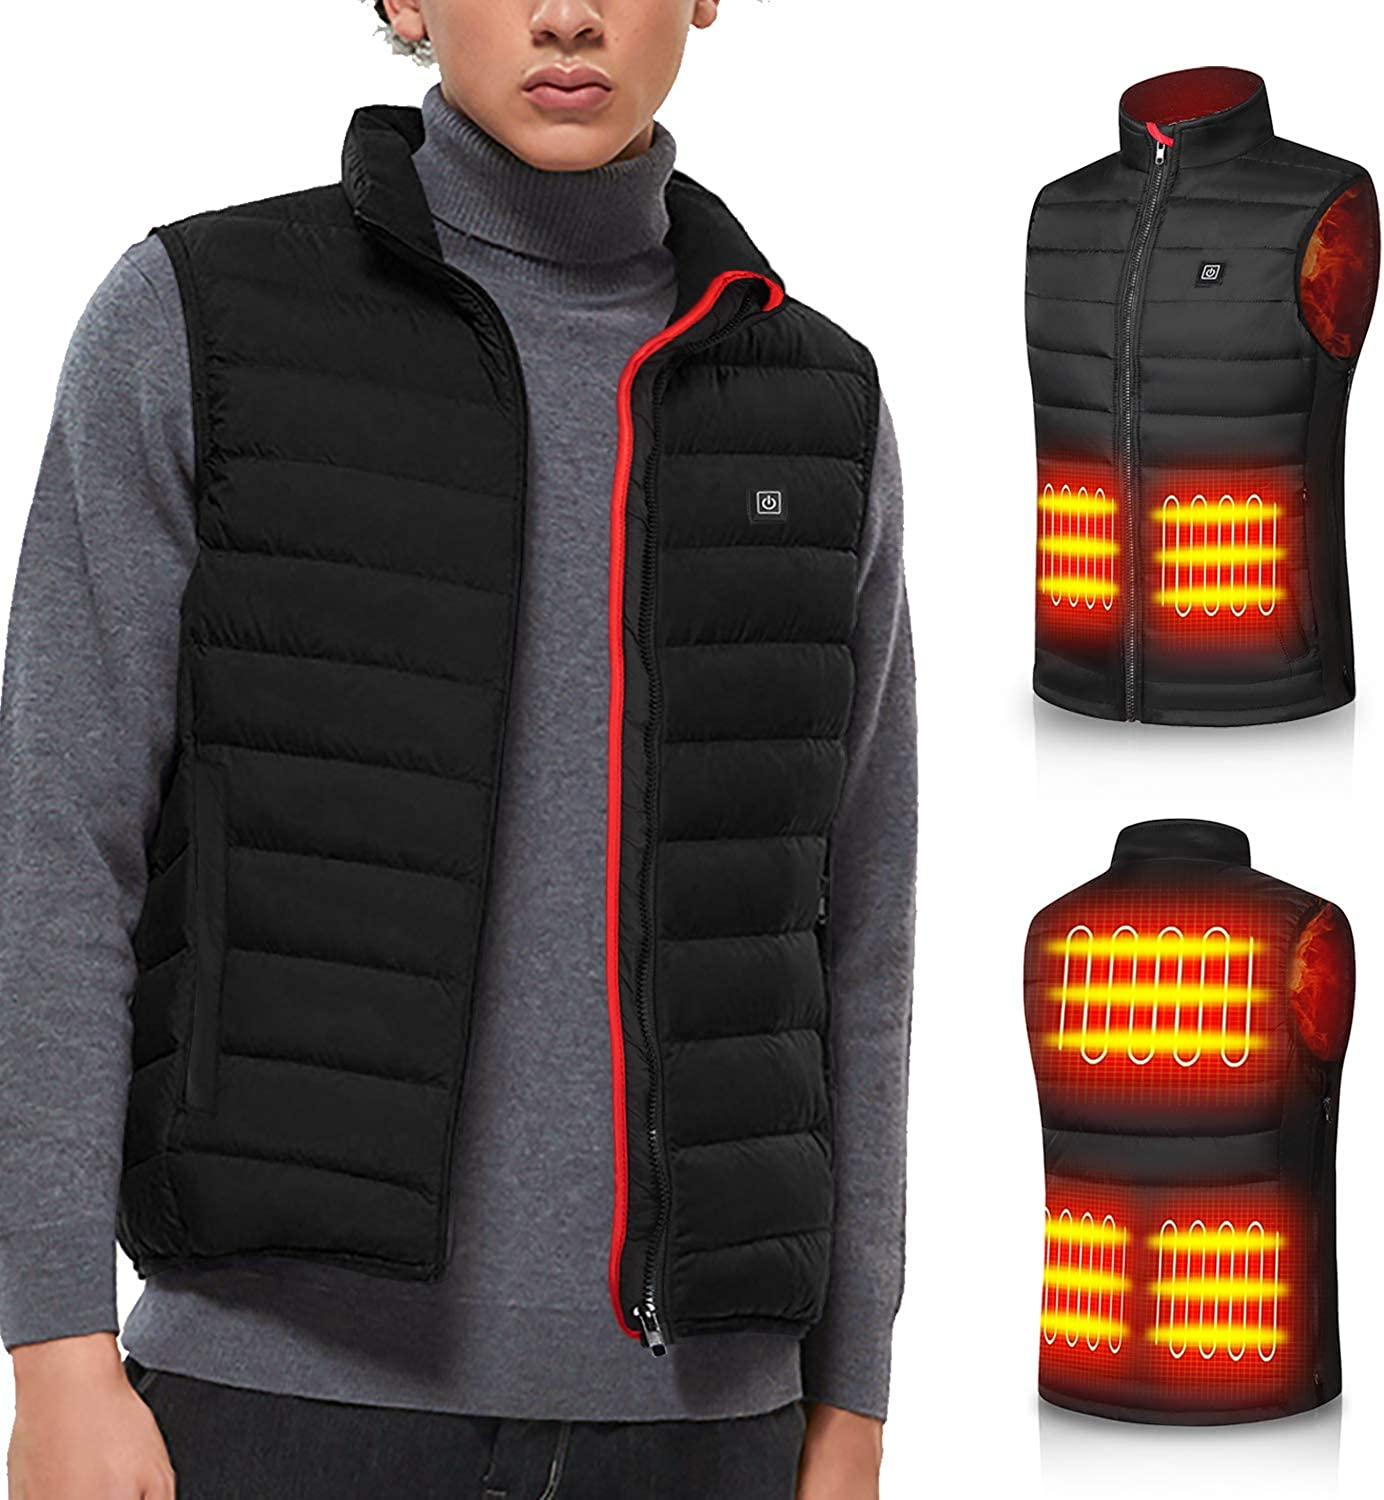 Heated Vest for Man Electric Heating Coat Jacket Warm Clothing for Winter(No Battery)